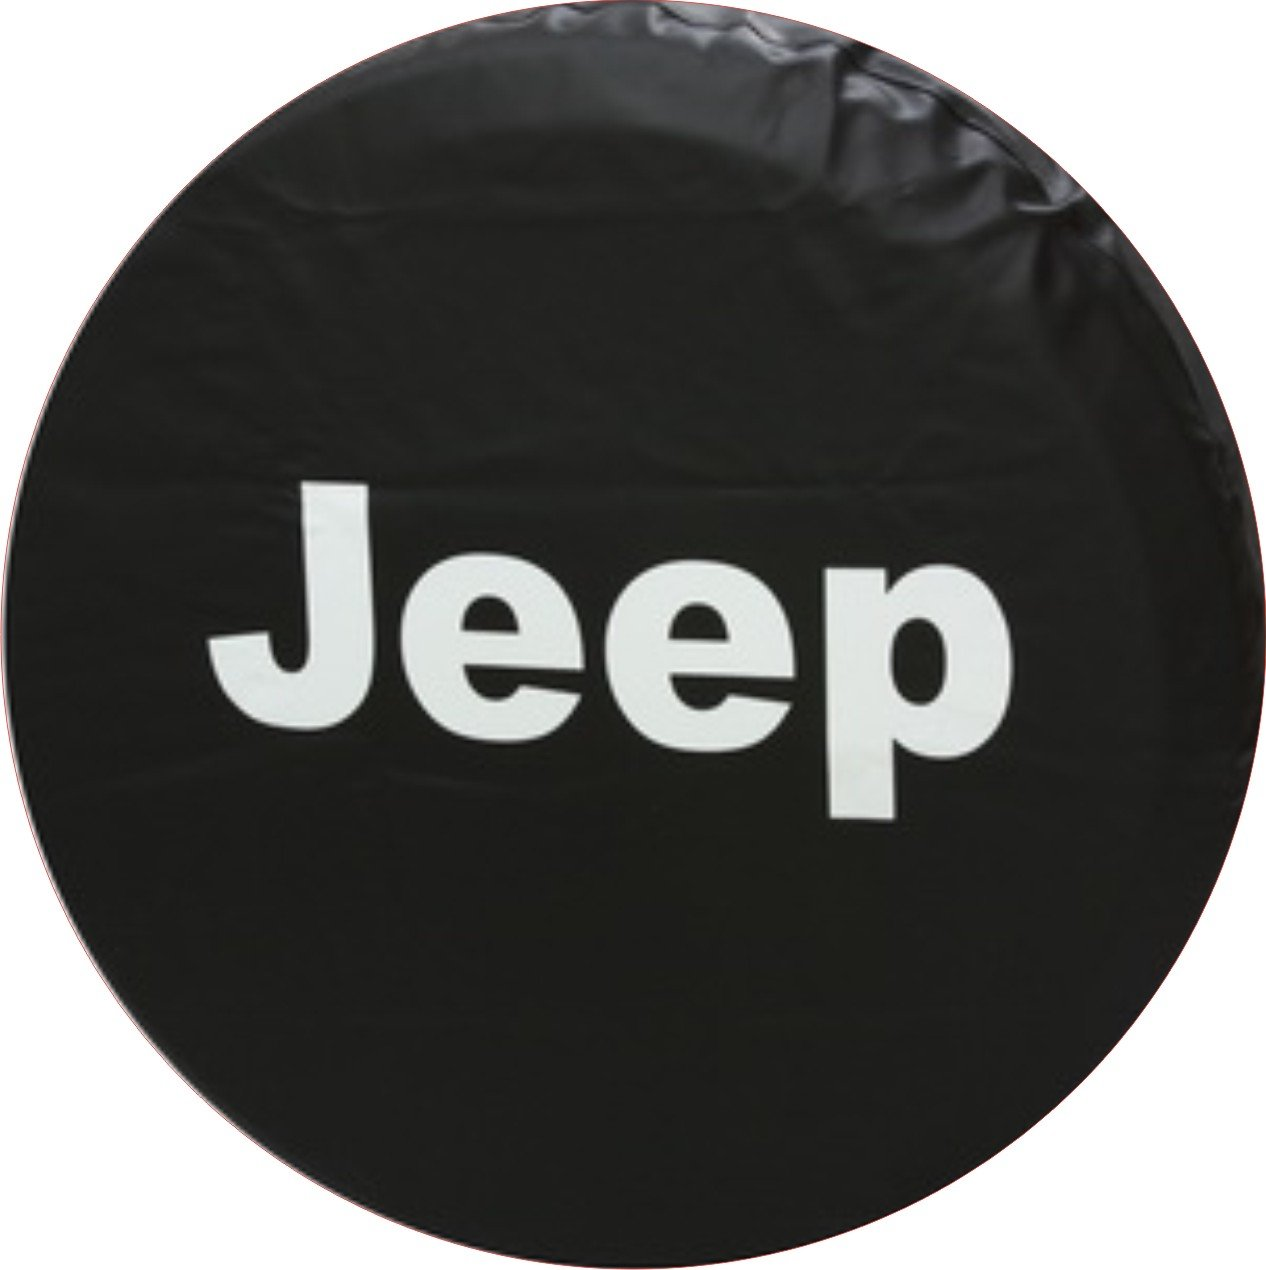 Swing Gift Packing Bag Automelody /® 28-33inch Spare Tyre Cover Tire Cover Black For Jeep Wrangler 32-33 inch